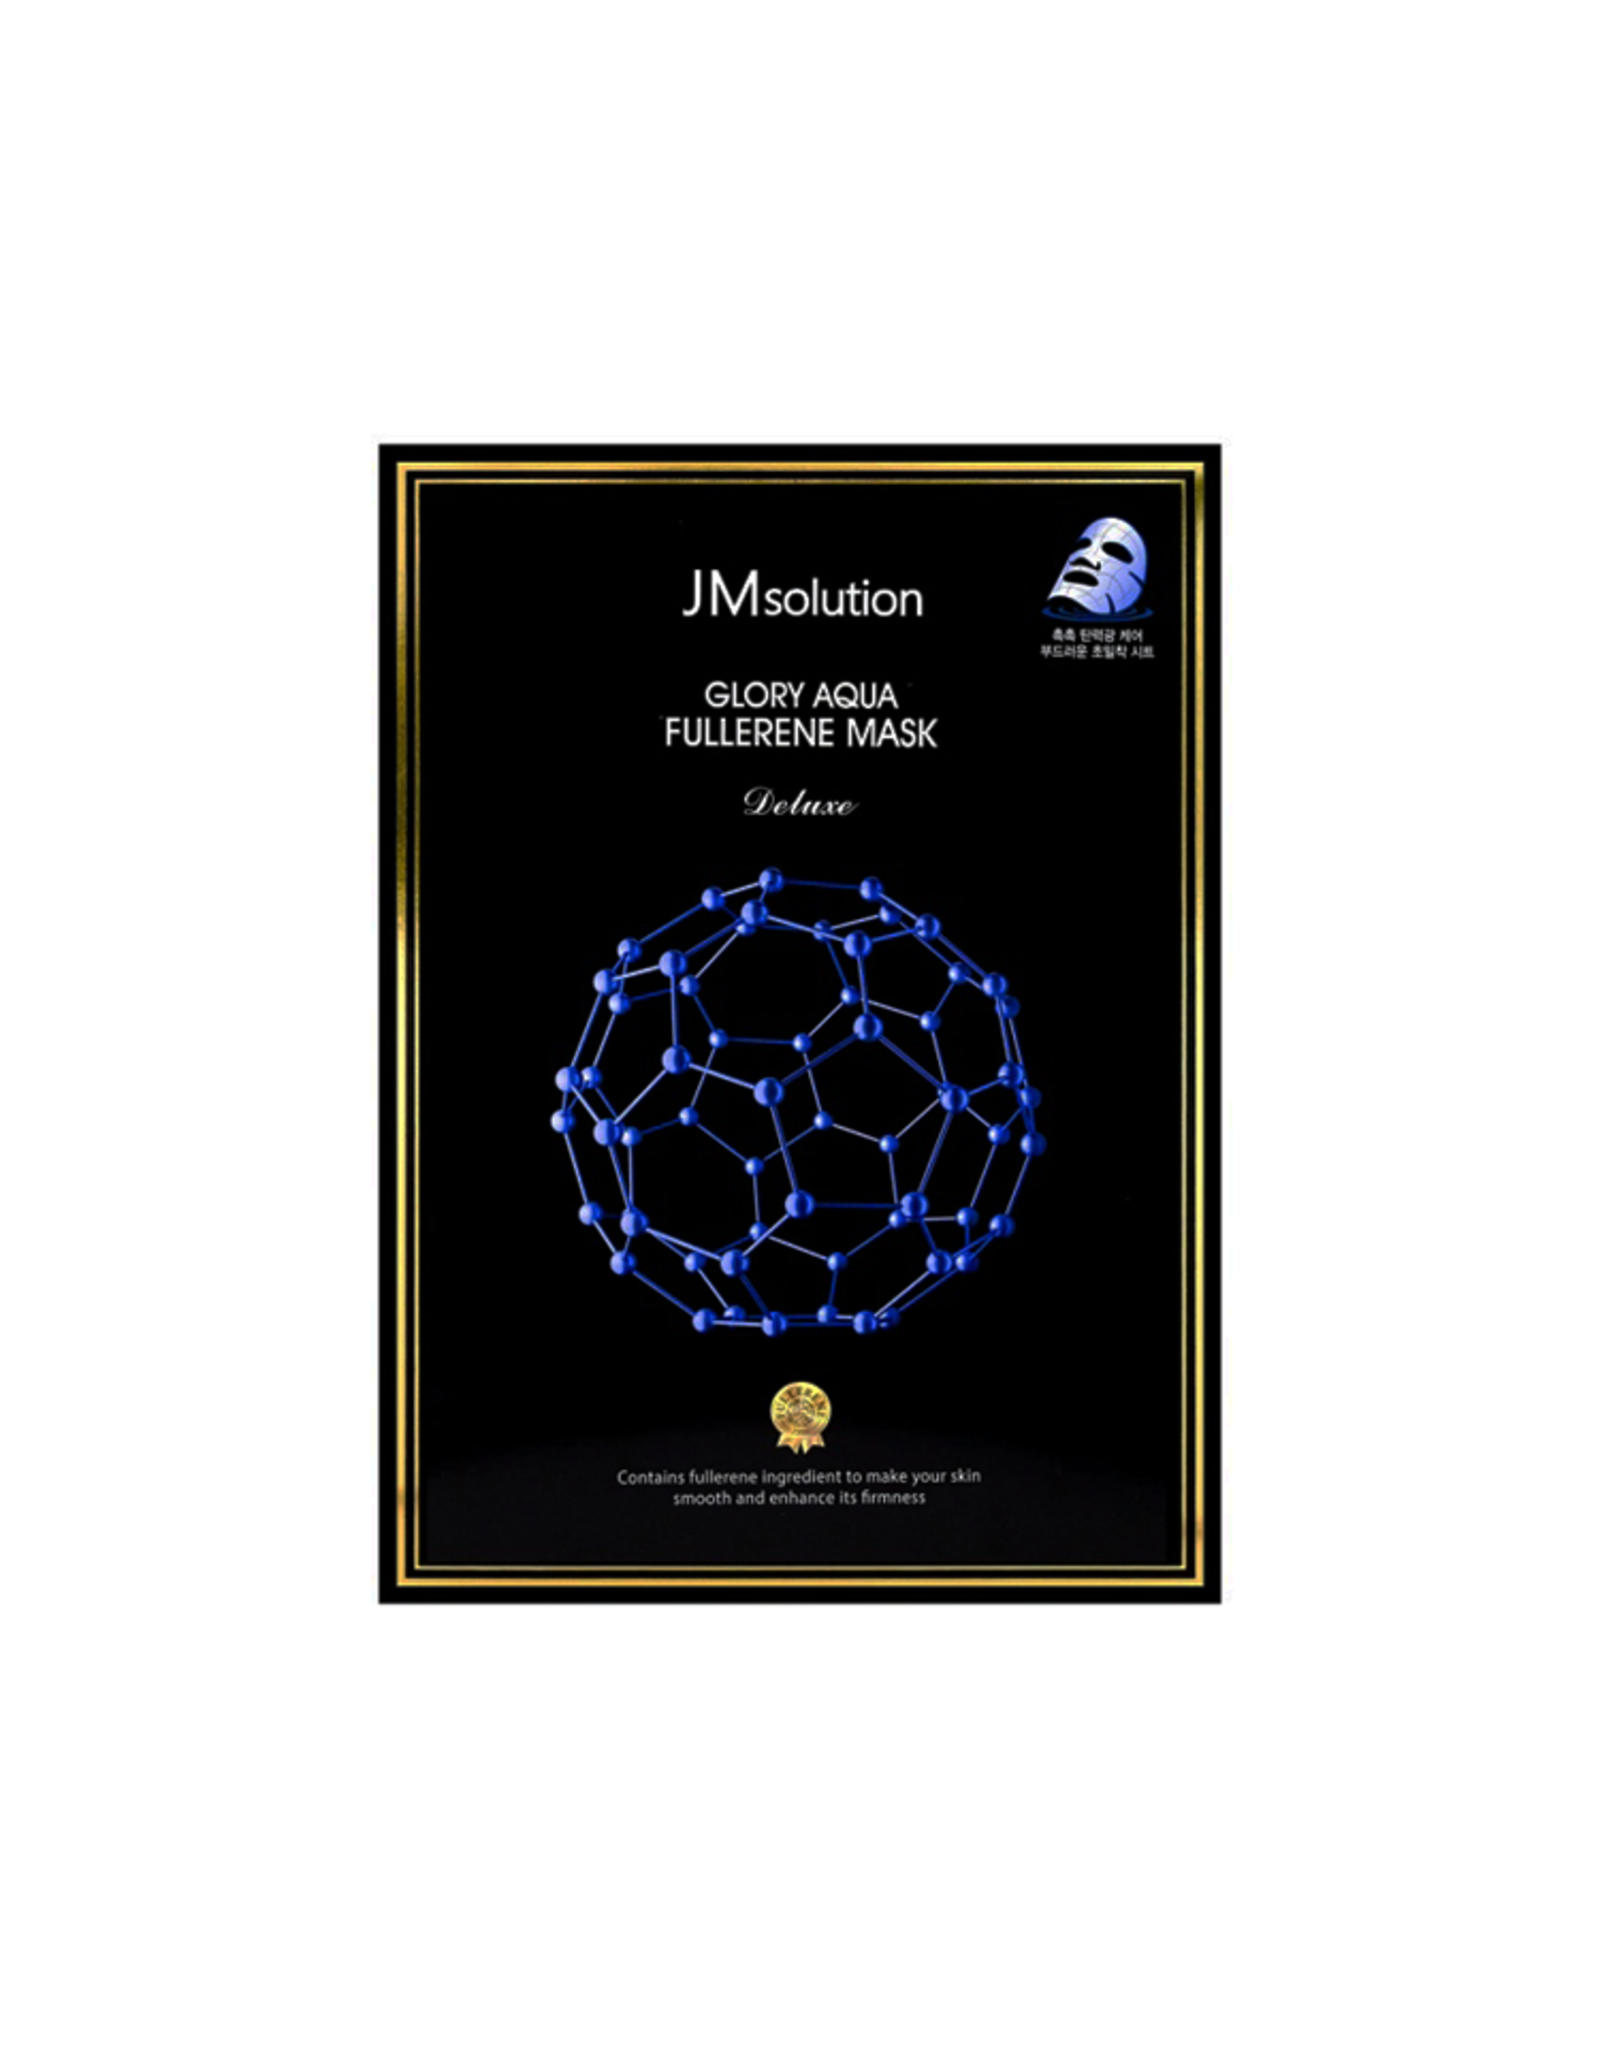 JM Solution JM Solution Glory Aqua Fullerene Mask